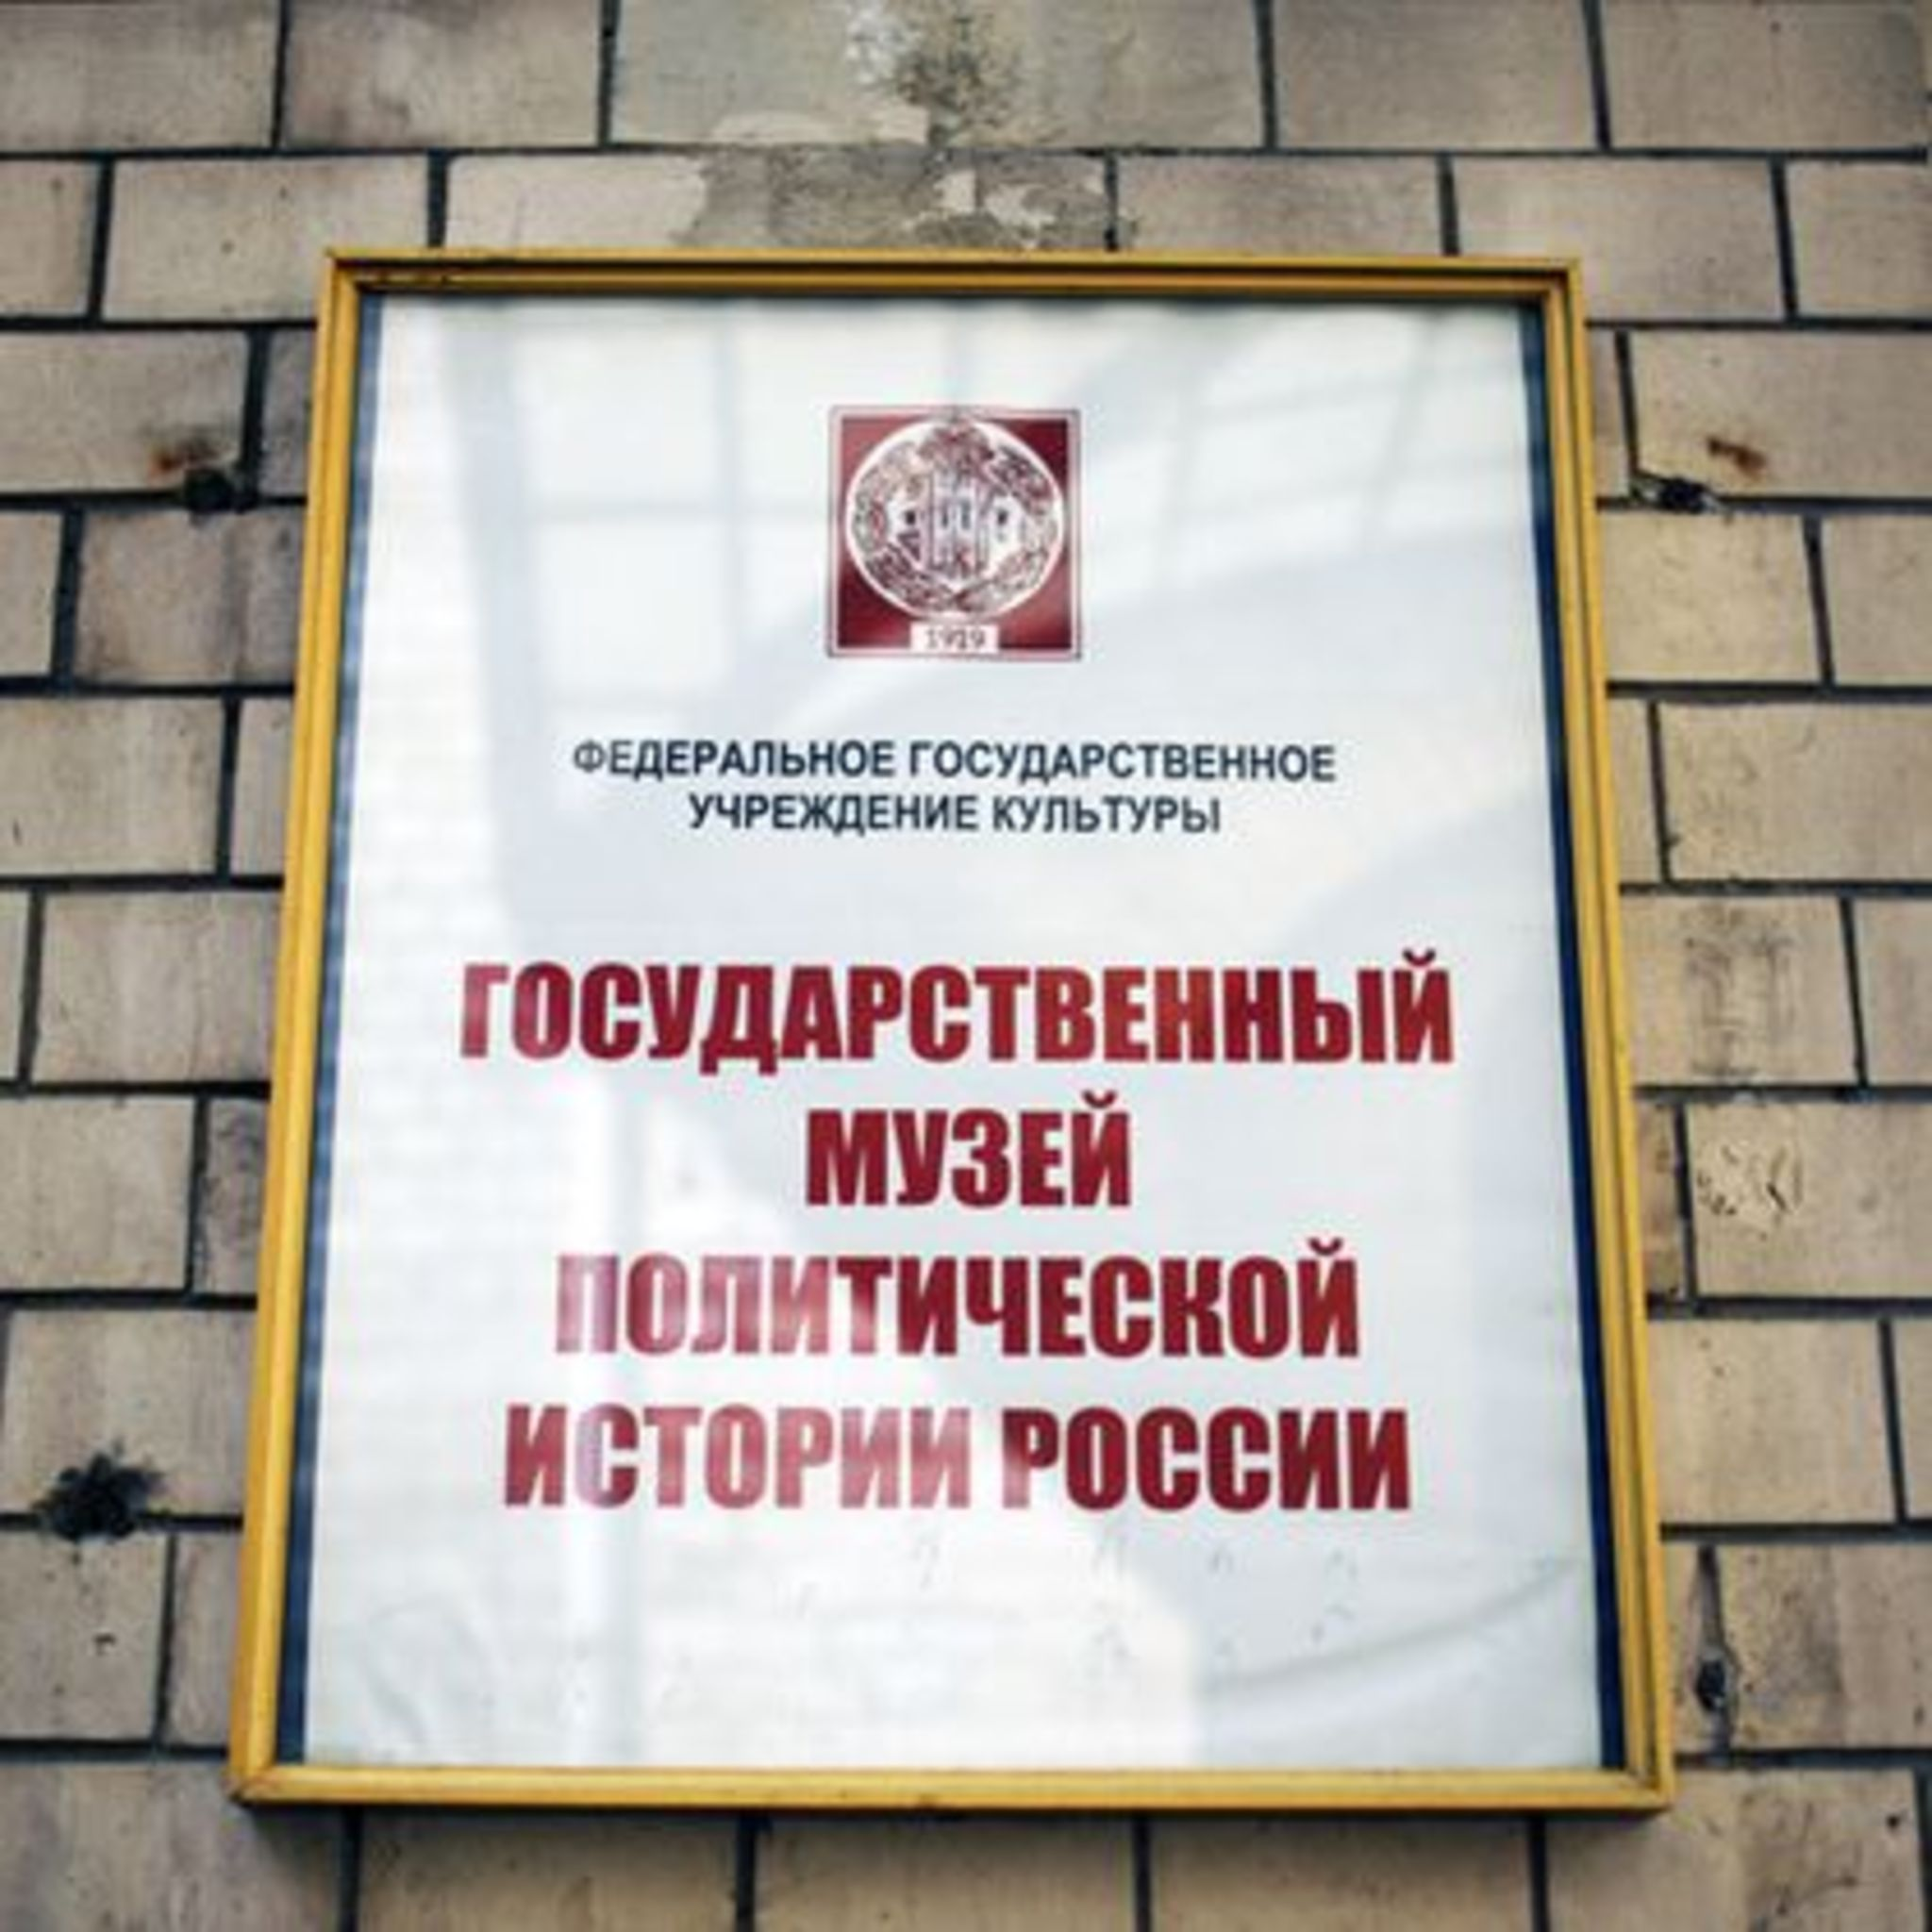 State Museum of Political History of Russia